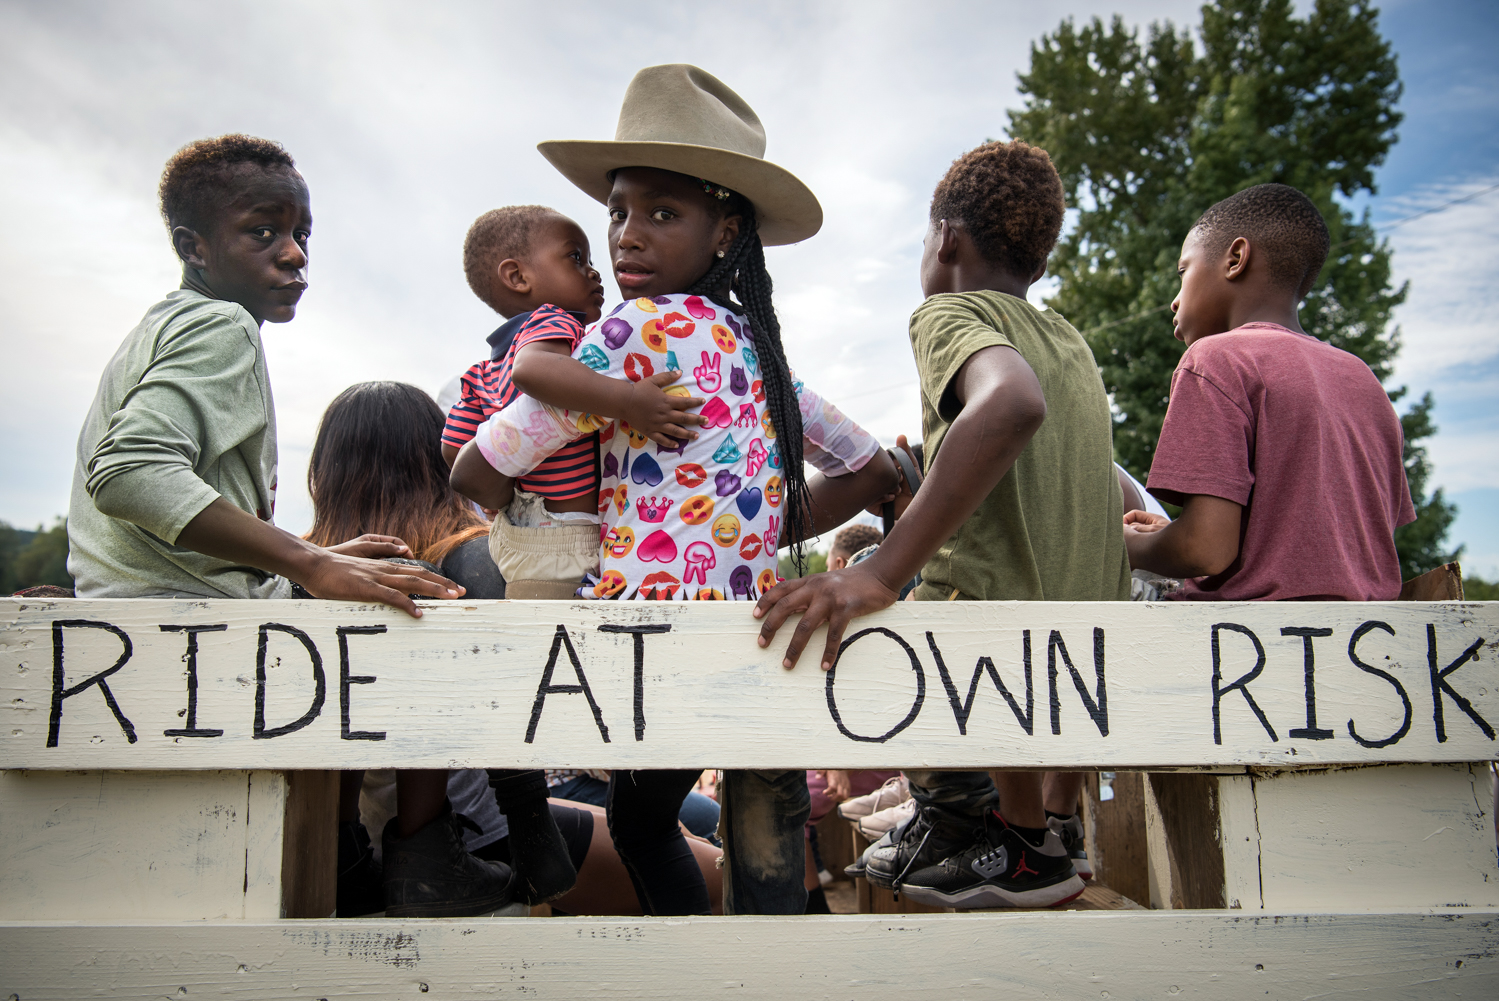 A group of kids wait for a trail ride to begin in rural Tallahatchie County, Mississippi.